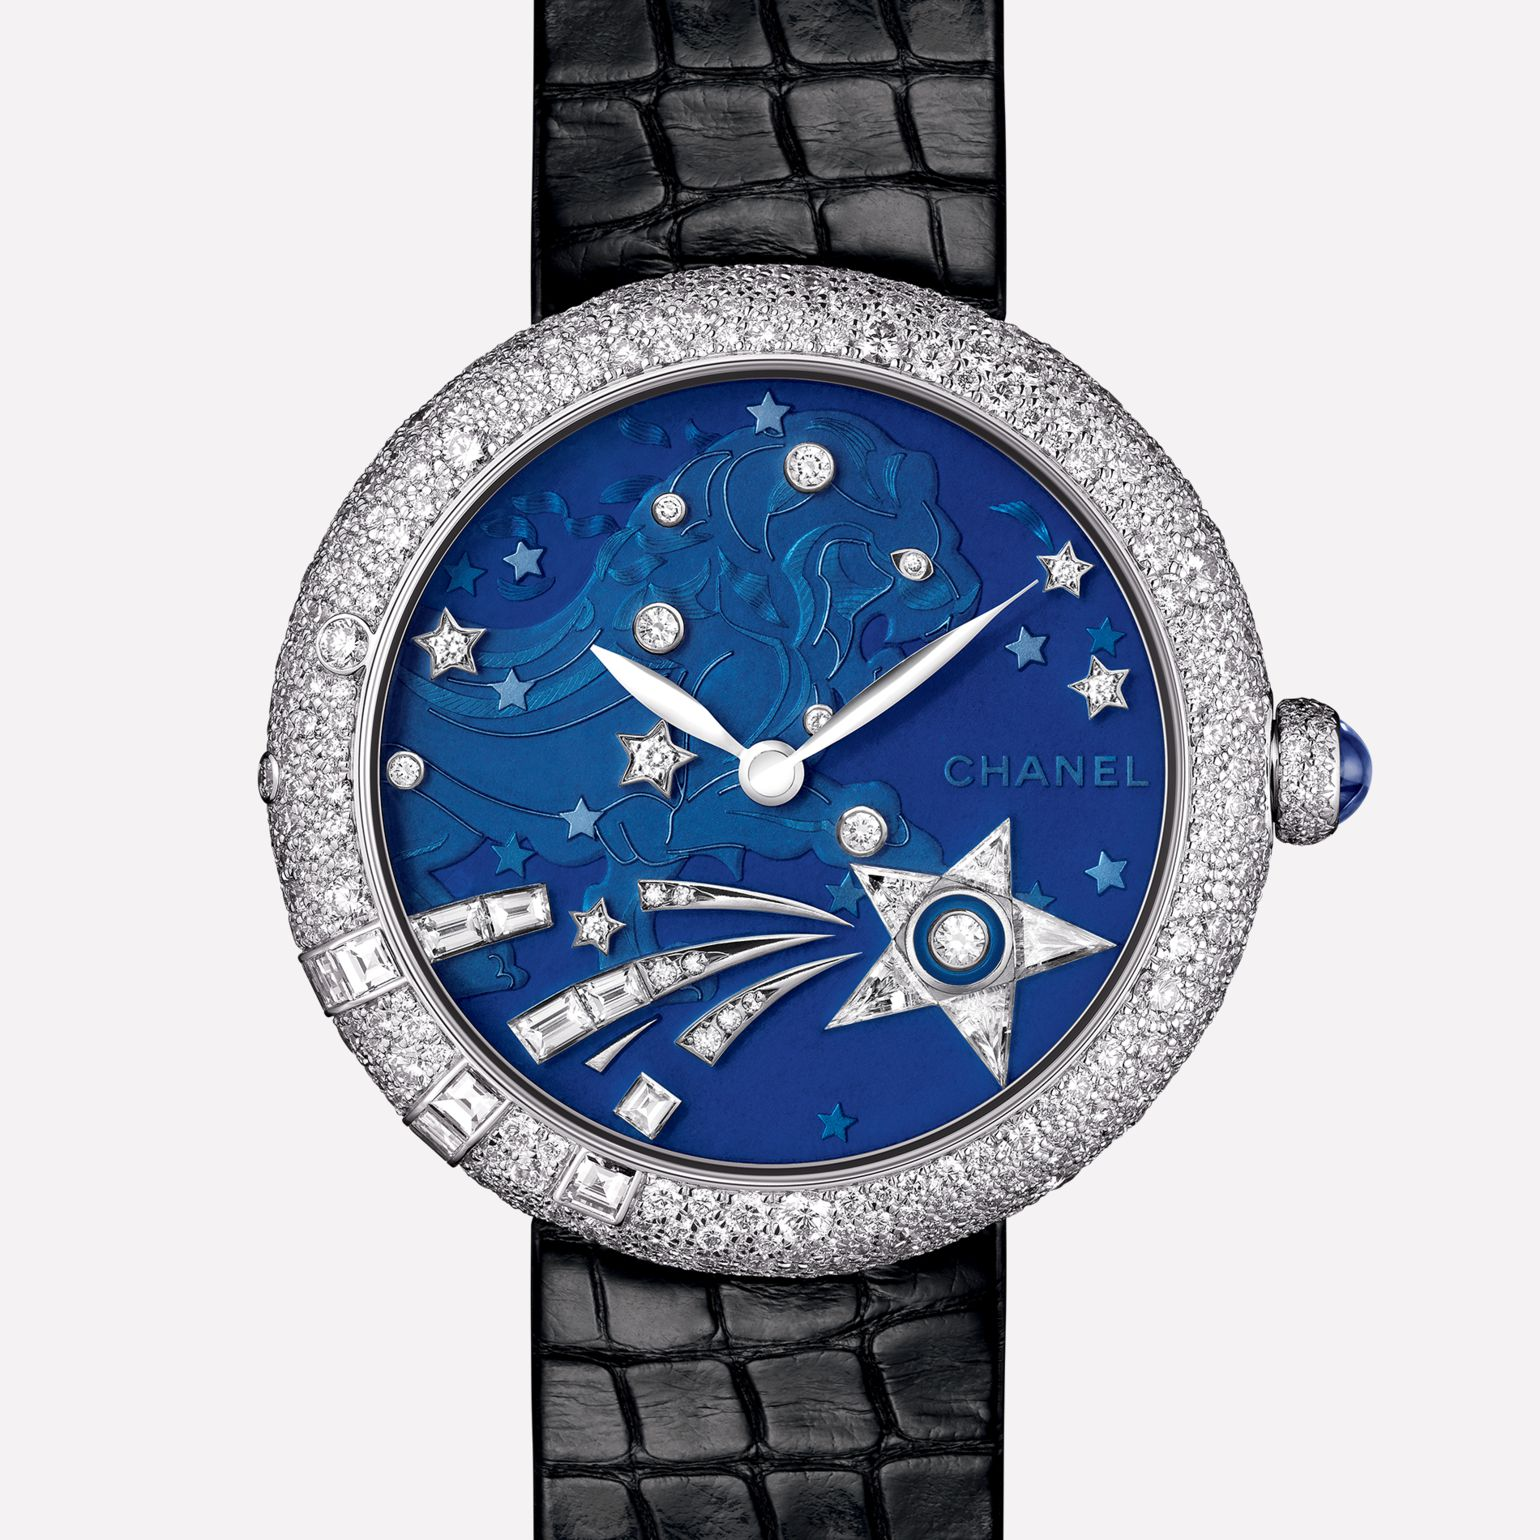 Mademoiselle Privé La Constellation du Lion - translucent blue Grand Feu enamel and diamonds